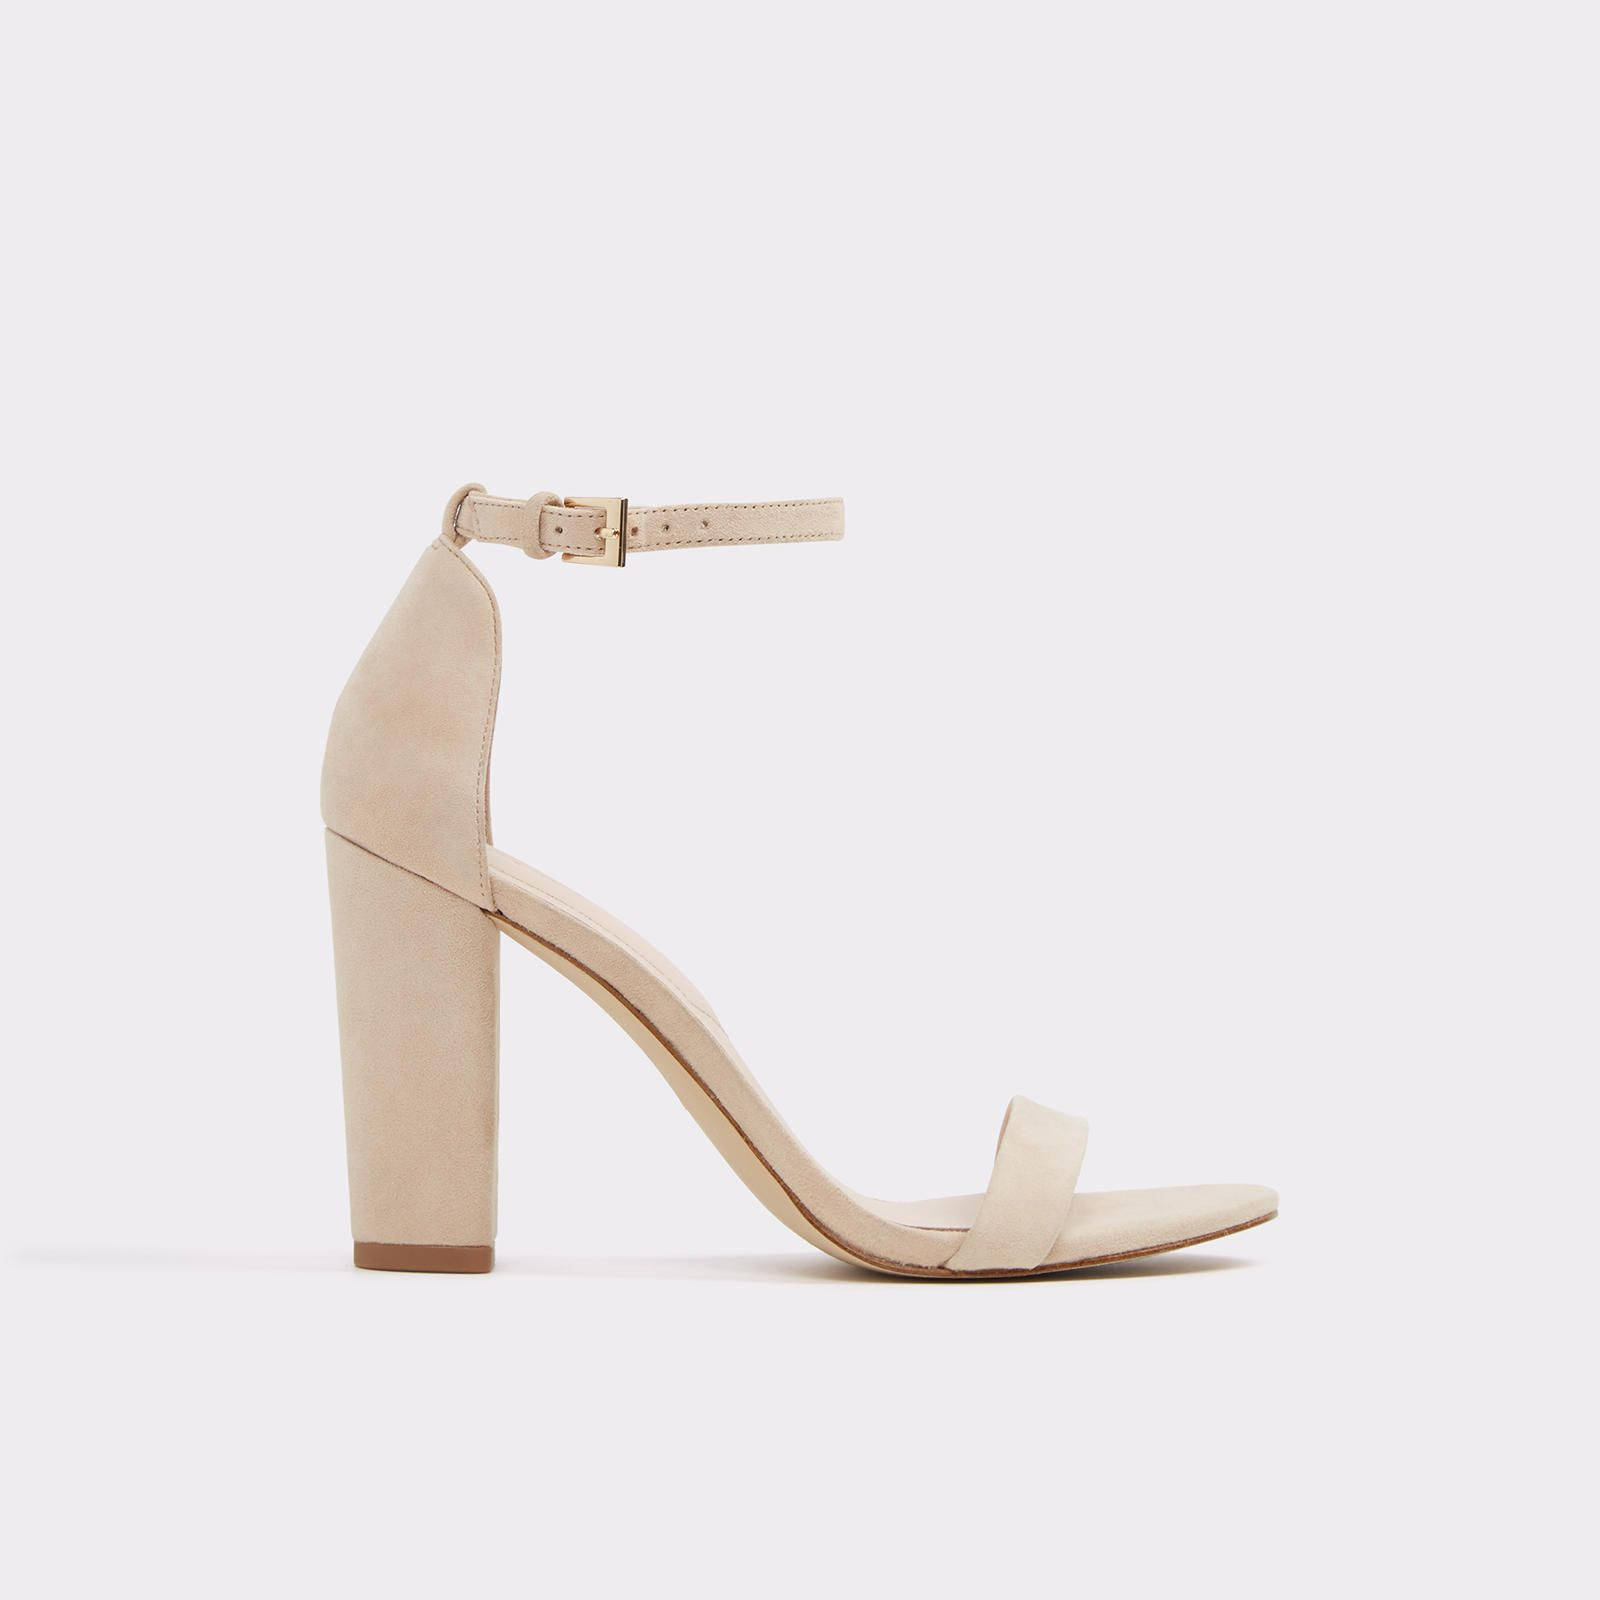 7b091427b80 Aldo Myly | Heeled Shoes | Sandals, Casual heels, Women's shoes sandals